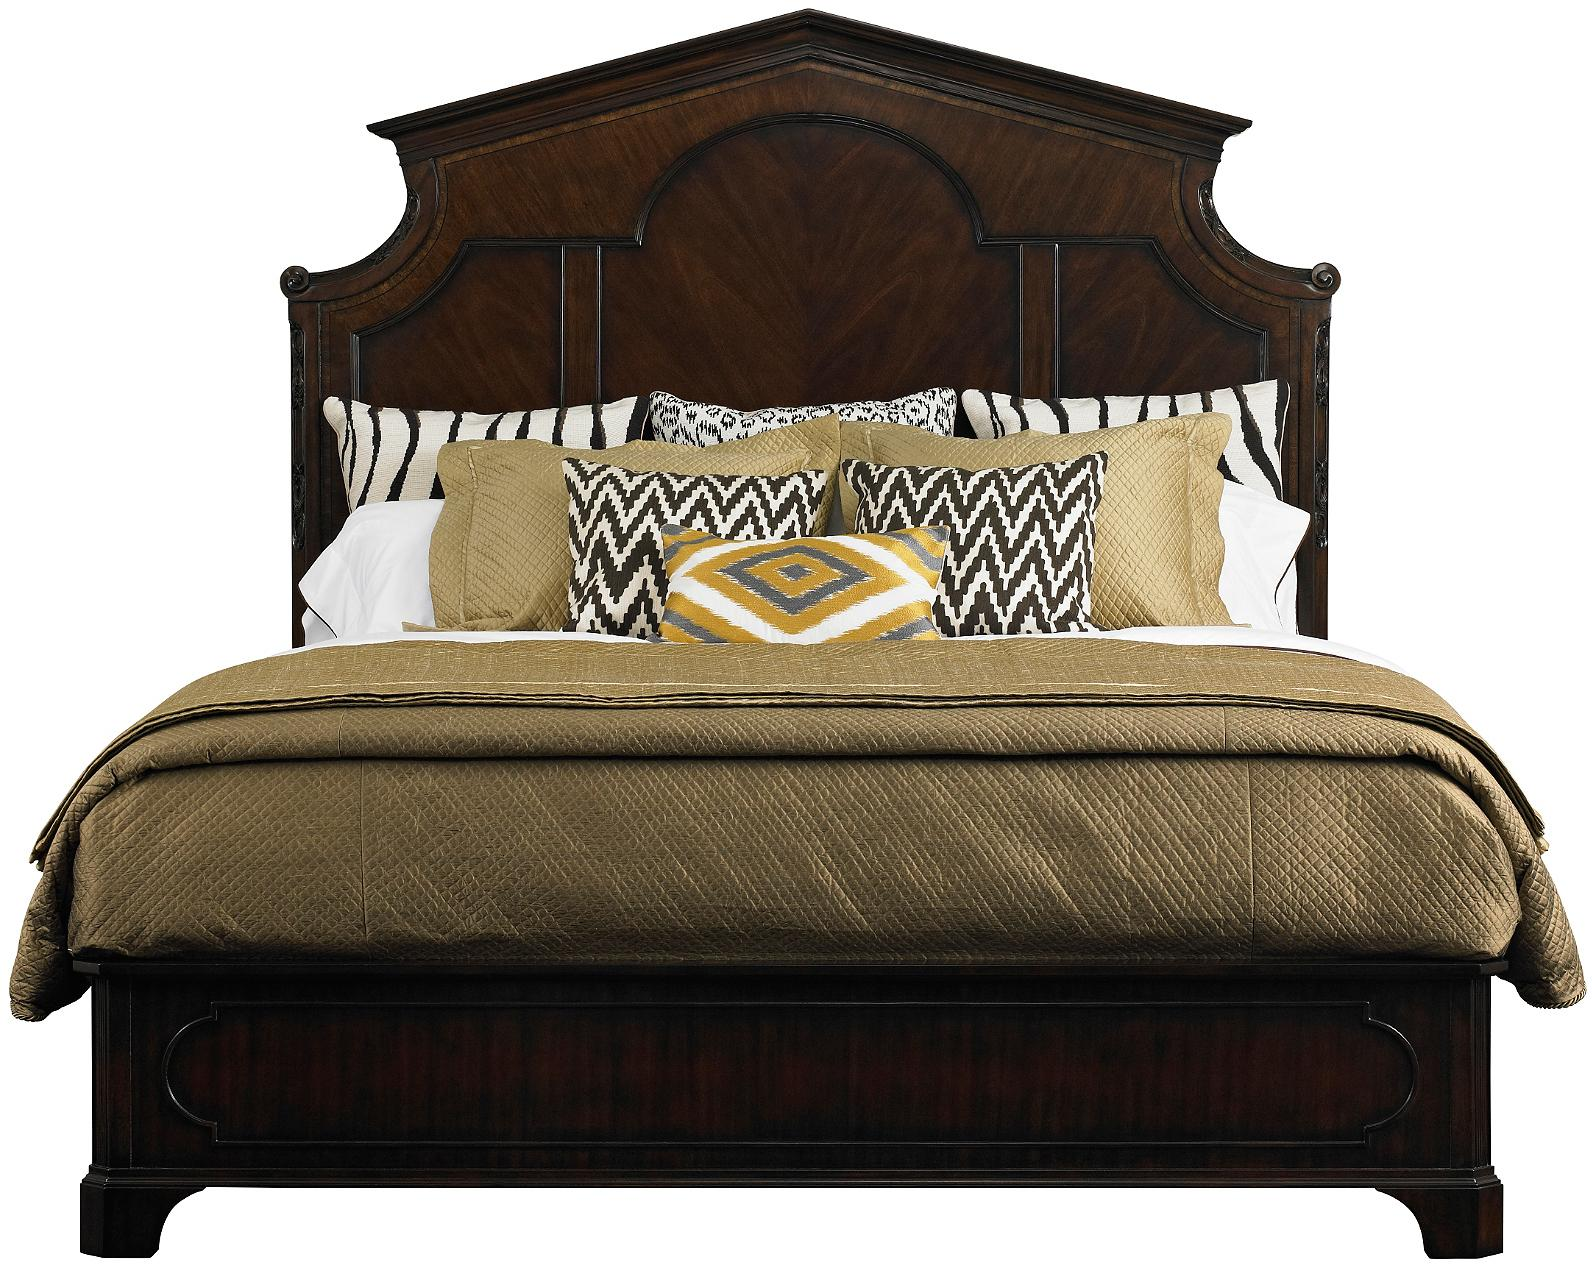 Stanley Furniture Charleston Regency Queen Cathedral Bed - Item Number: 302-13-40